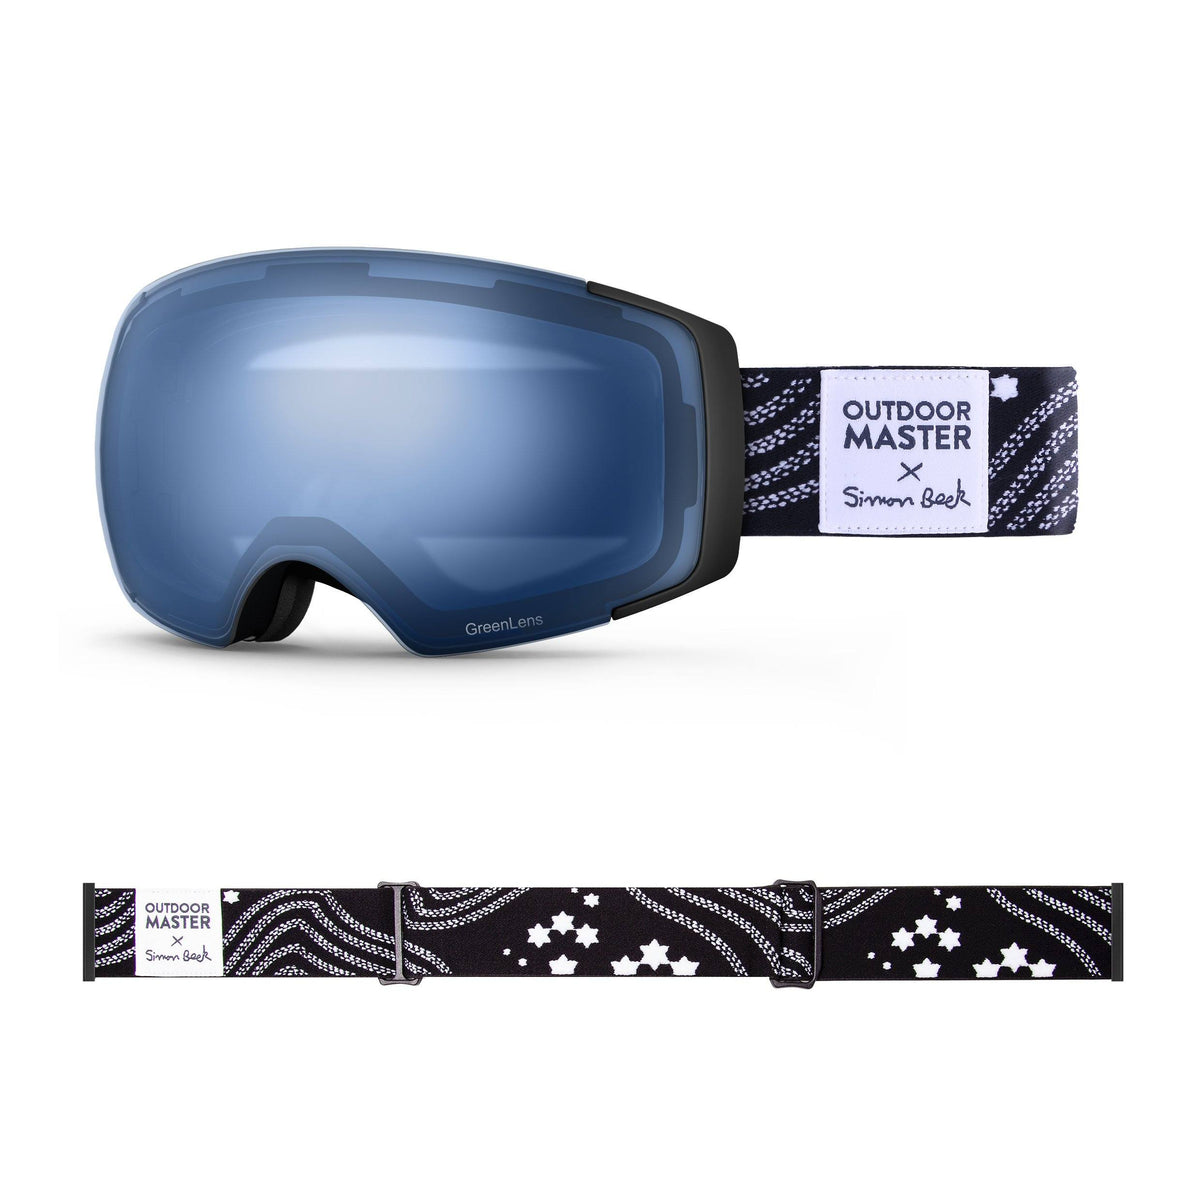 OutdoorMaster x Simon Beck Ski Goggles Pro Series - Snowshoeing Art Limited Edition OutdoorMaster GreenLens VLT 60% TAC Blue Polarized Star Road-Black